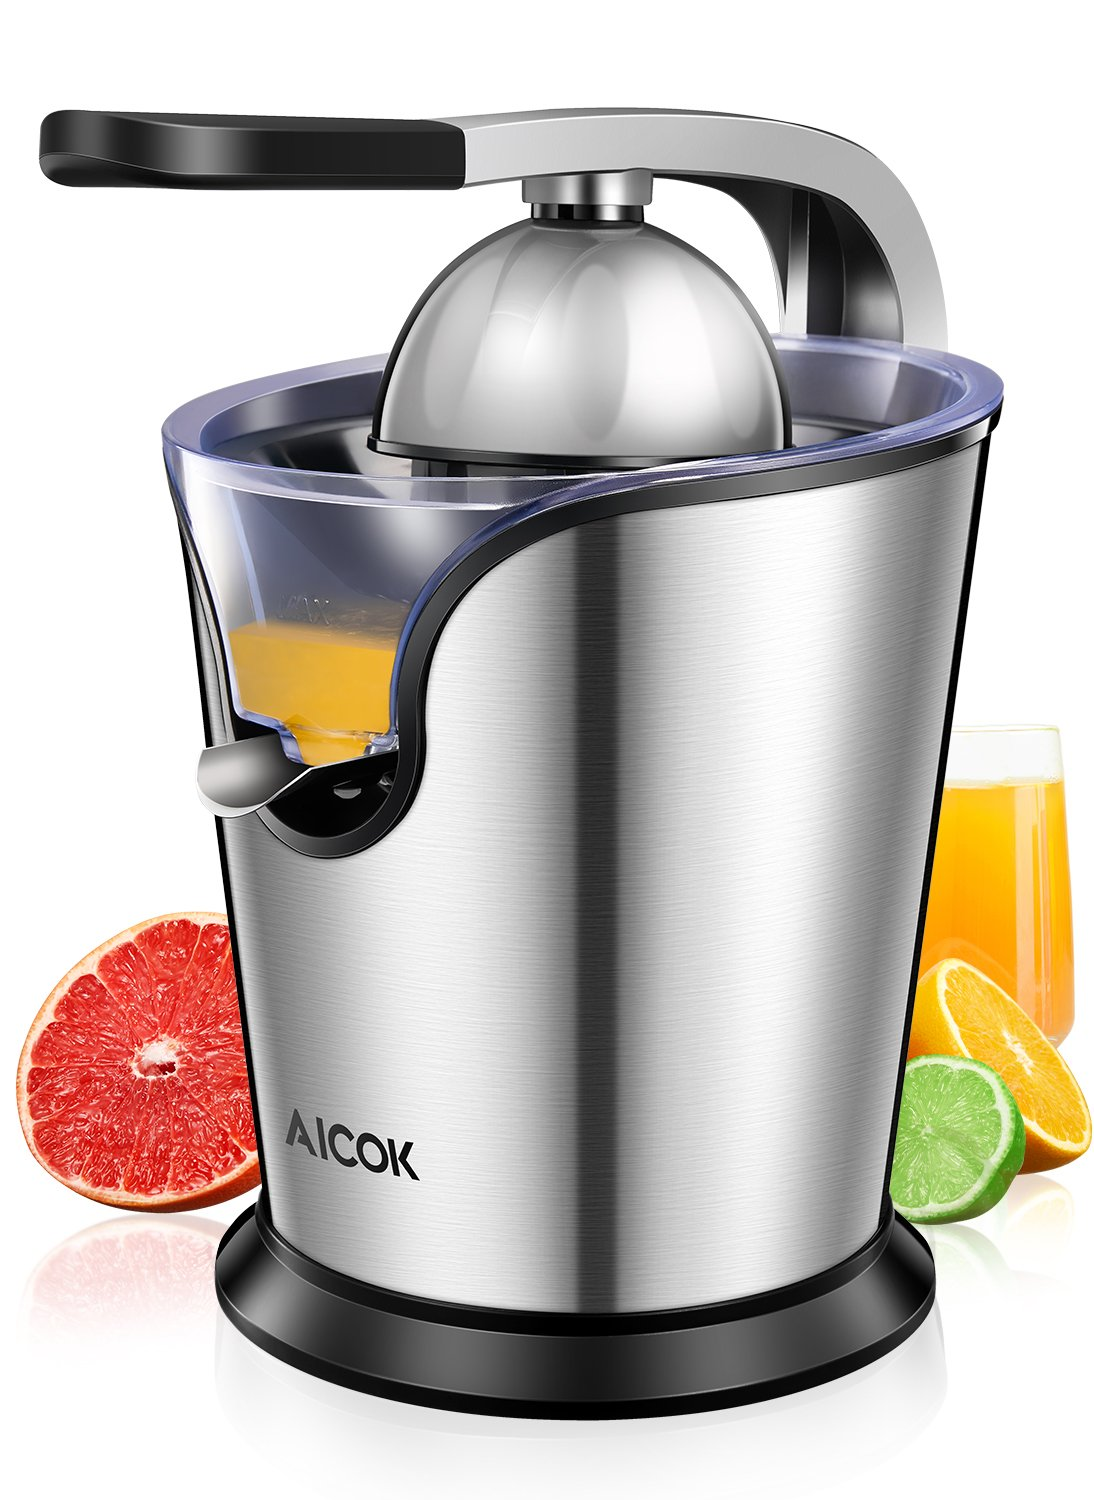 Aicok Citrus Juicer Electric Powerful 160W with Humanized Handle Citrus Press, Stainless Steel Anti-Drip Spout High Nutrient Orange Juice, Double Size Cones and Whisper-Quiet Motor, BPA free